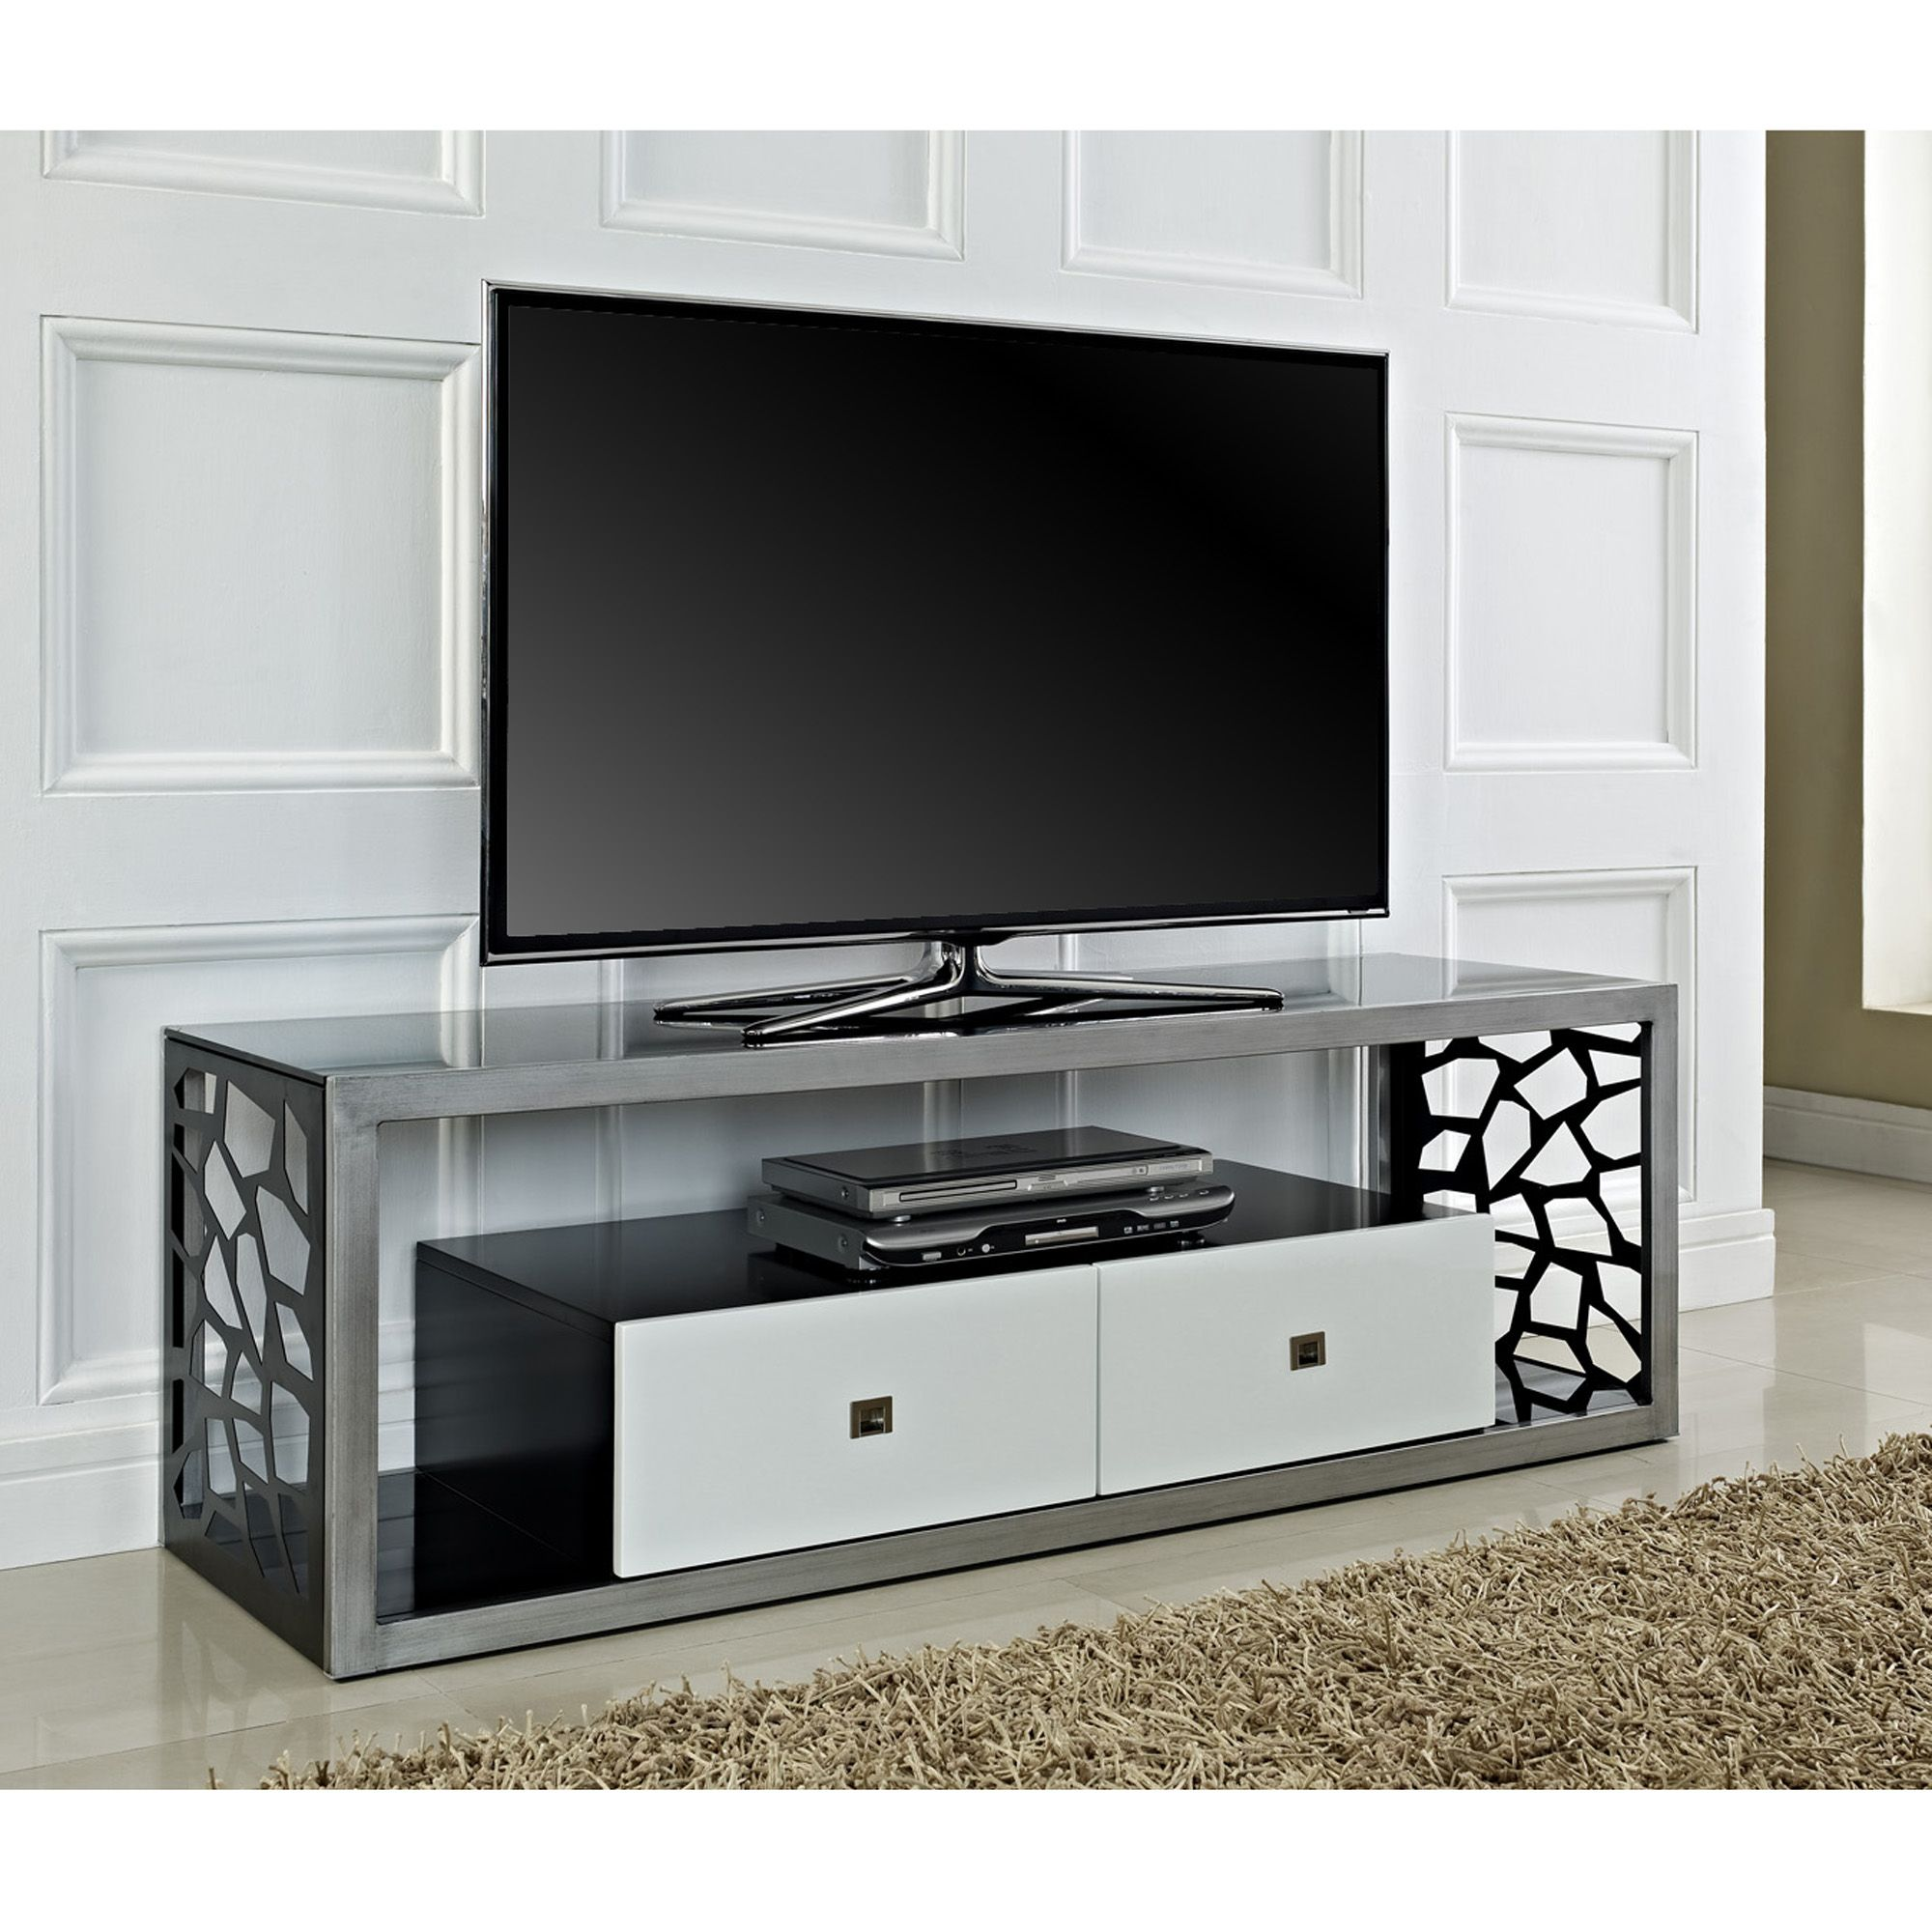 beautiful  mosaic tv stand brushed silver frame with white  - beautiful  mosaic tv stand brushed silver frame with white drawers andblack tempered